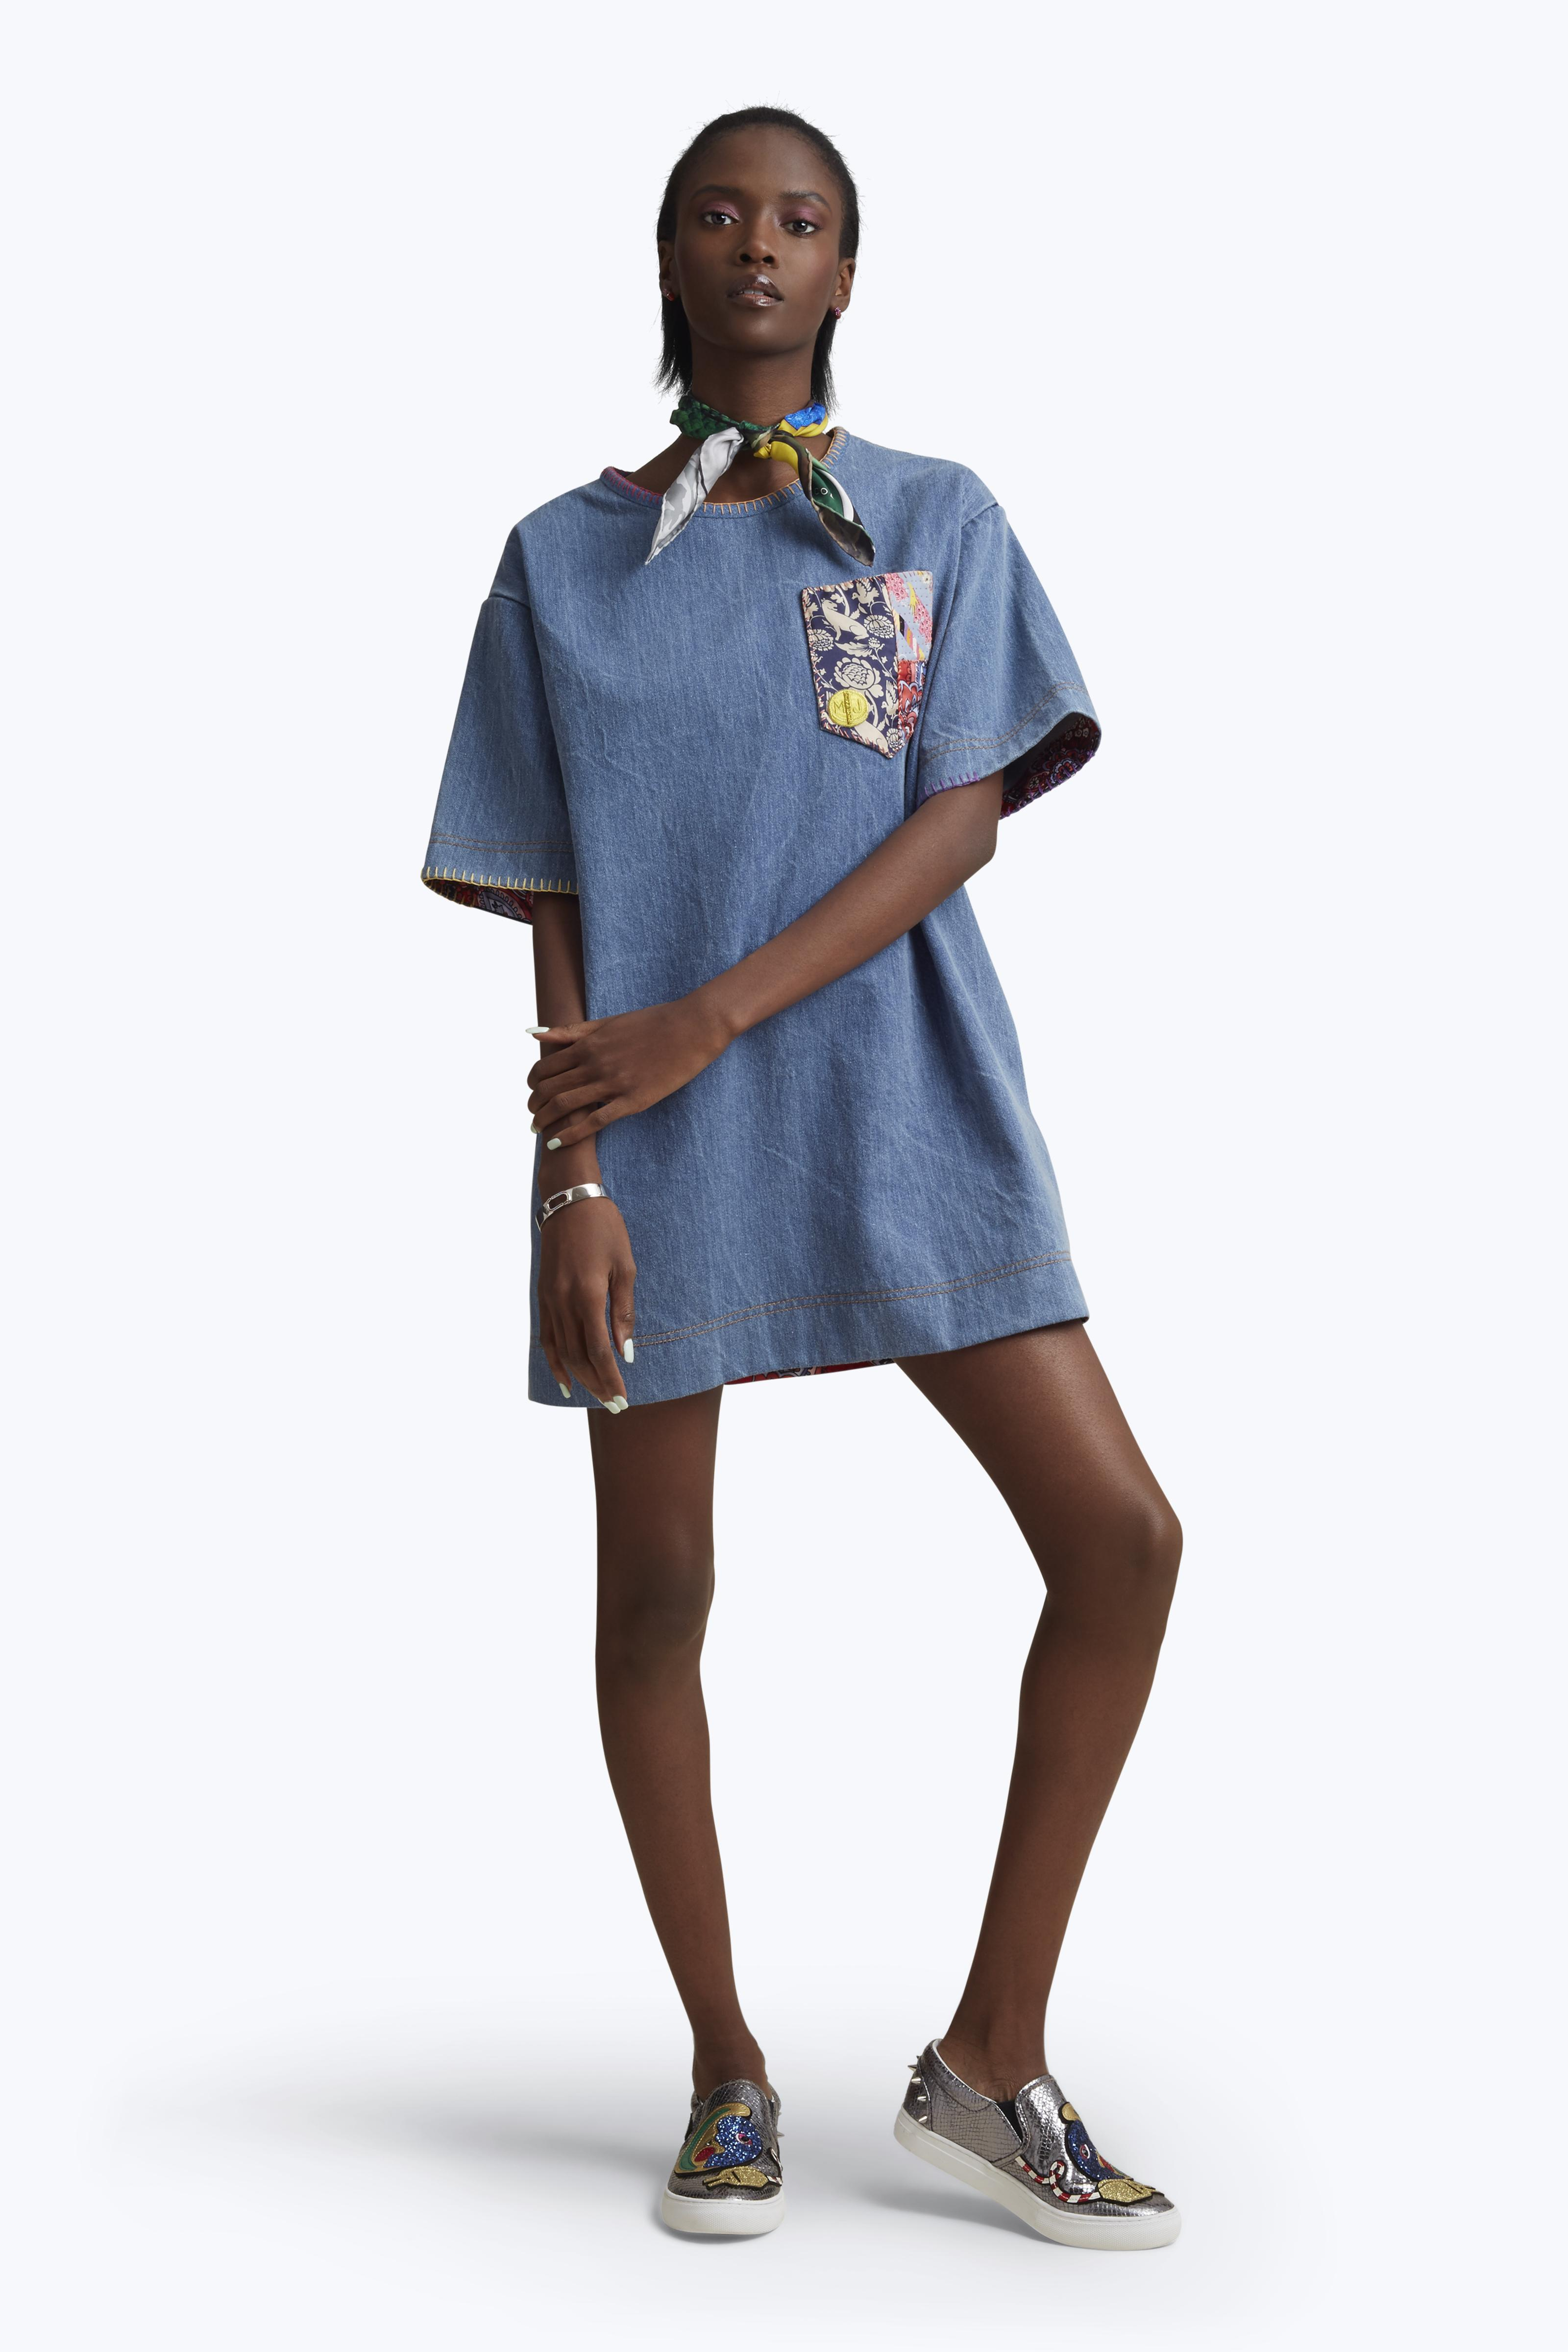 Marc Jacobs Denim T-Shirt Dress With Embroidery In Classic Indigo